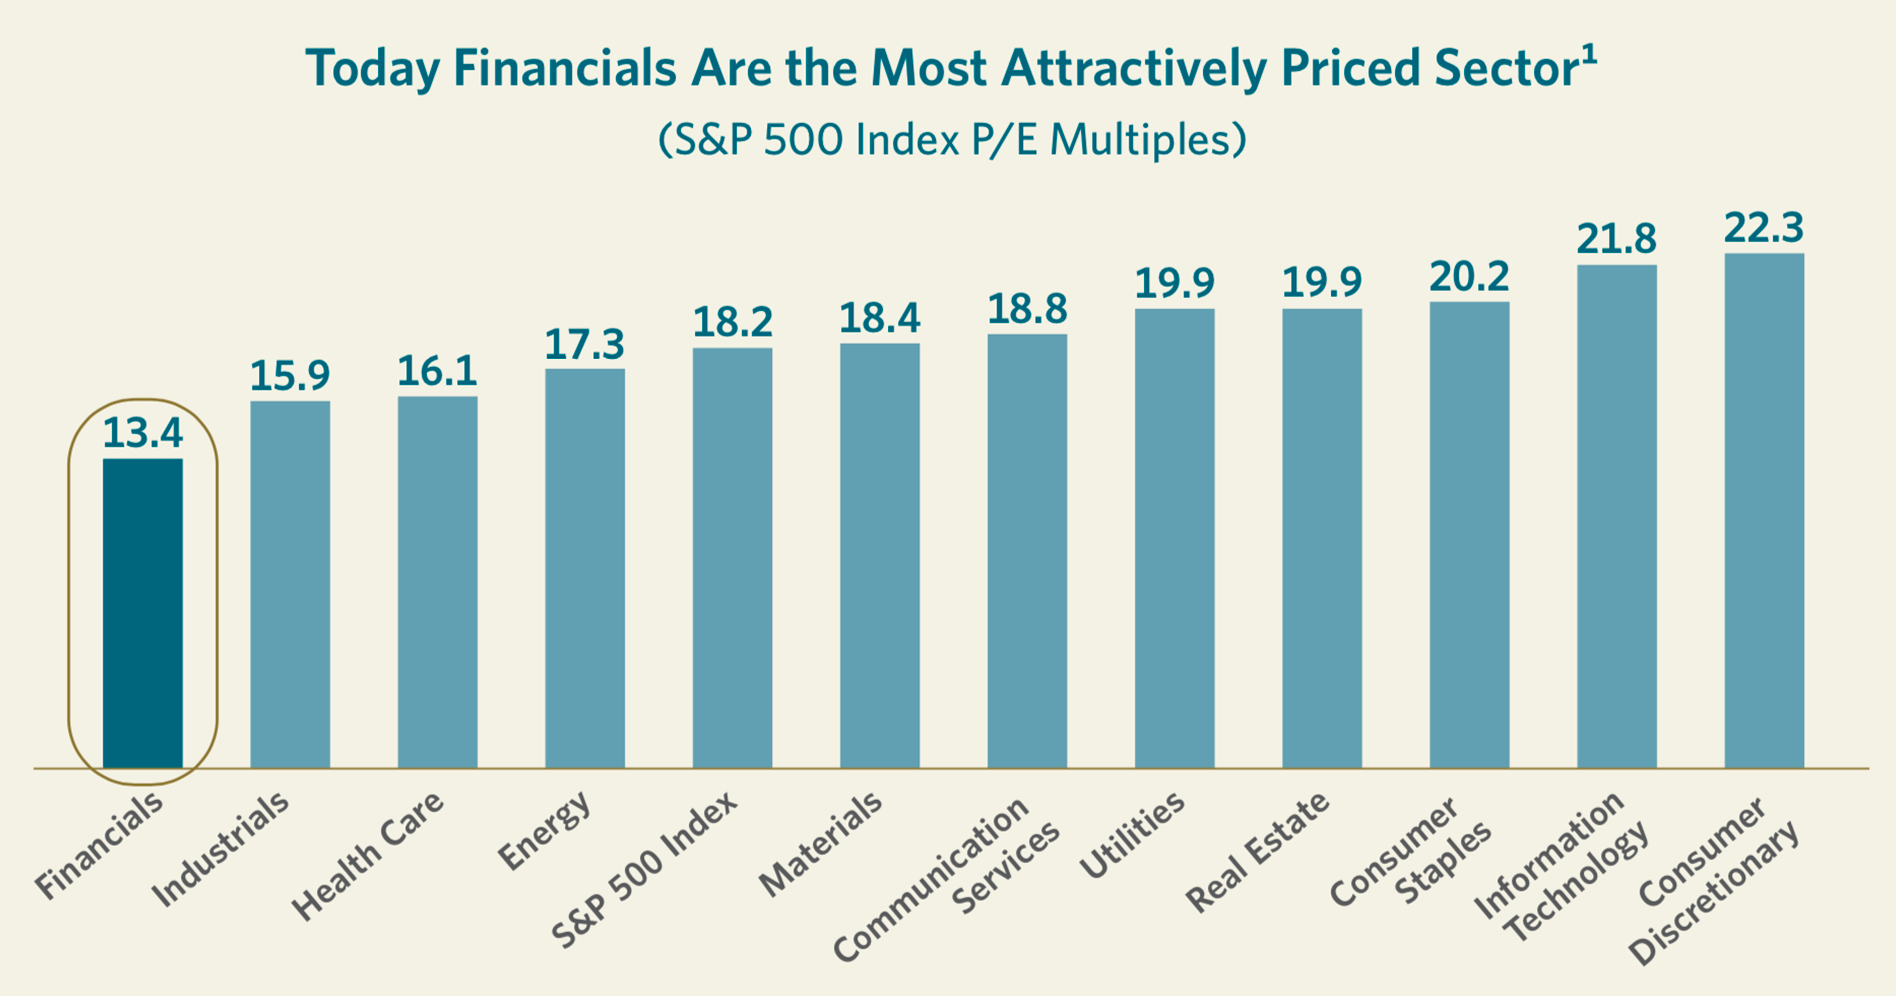 Today Financials Are the Most Attractively Priced Sector